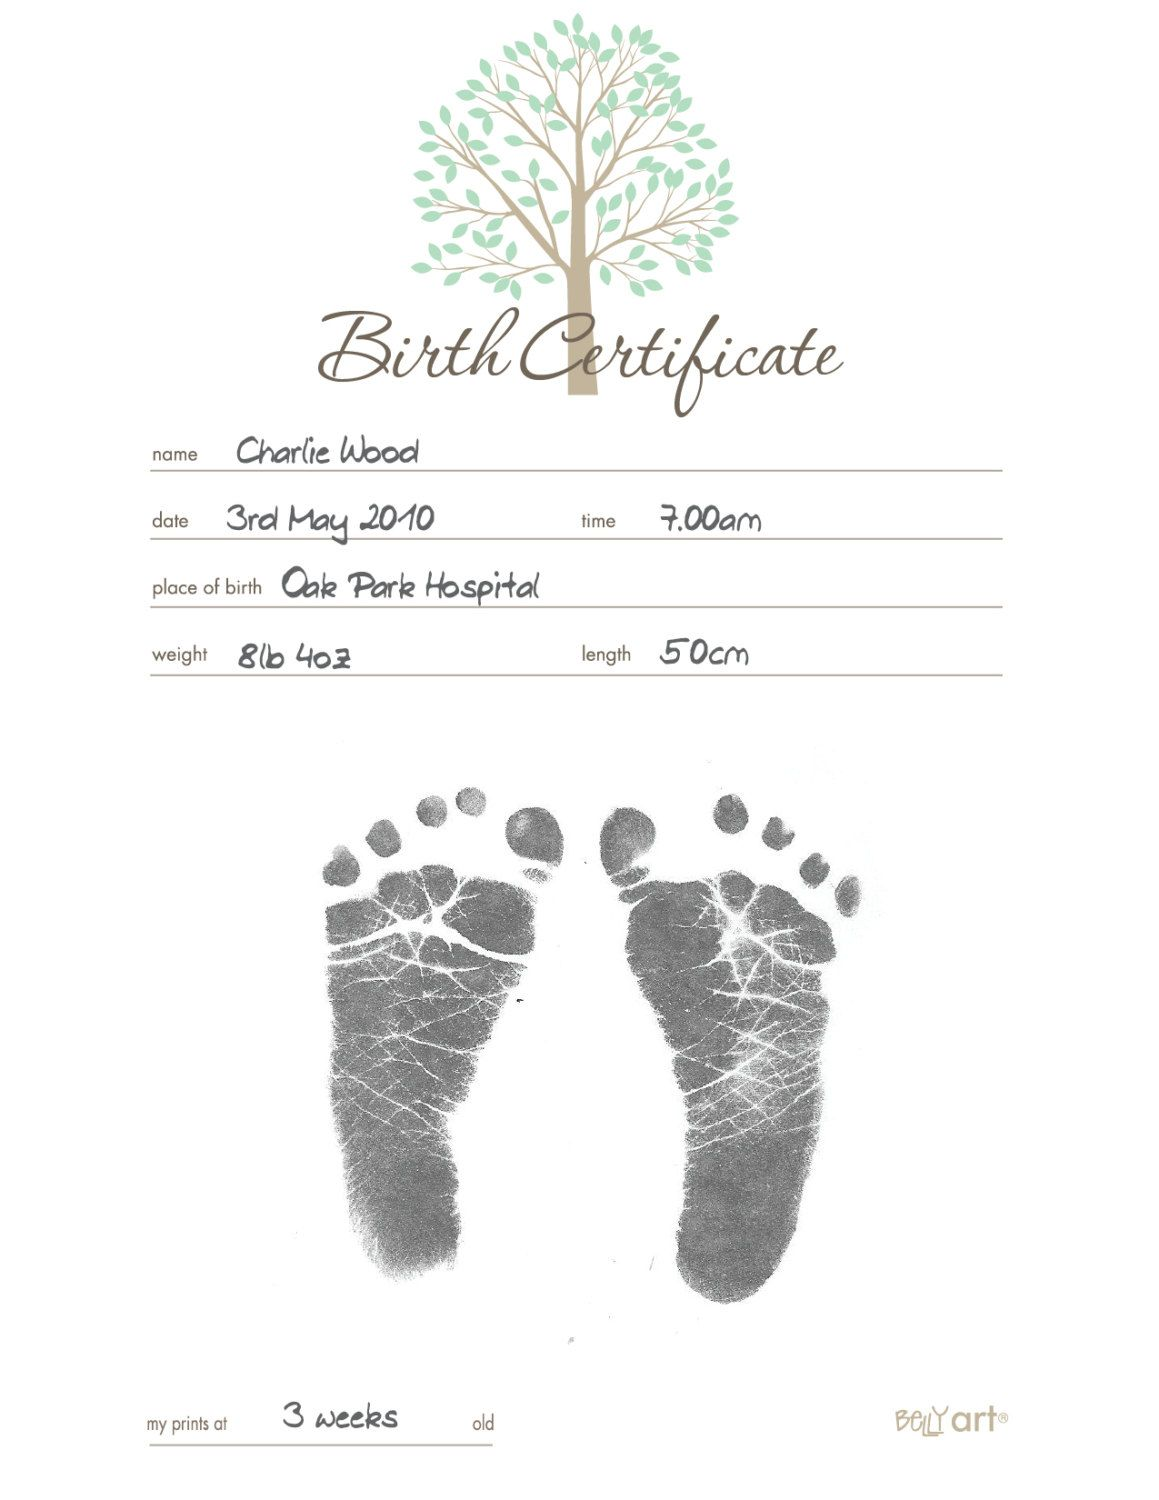 Inkless Birth Certifcate Kit By Bellyartkeepsakes On Etsy Birth Certificate Template Baby Dedication Certificate Birth Certificate Birth certificate template with footprints